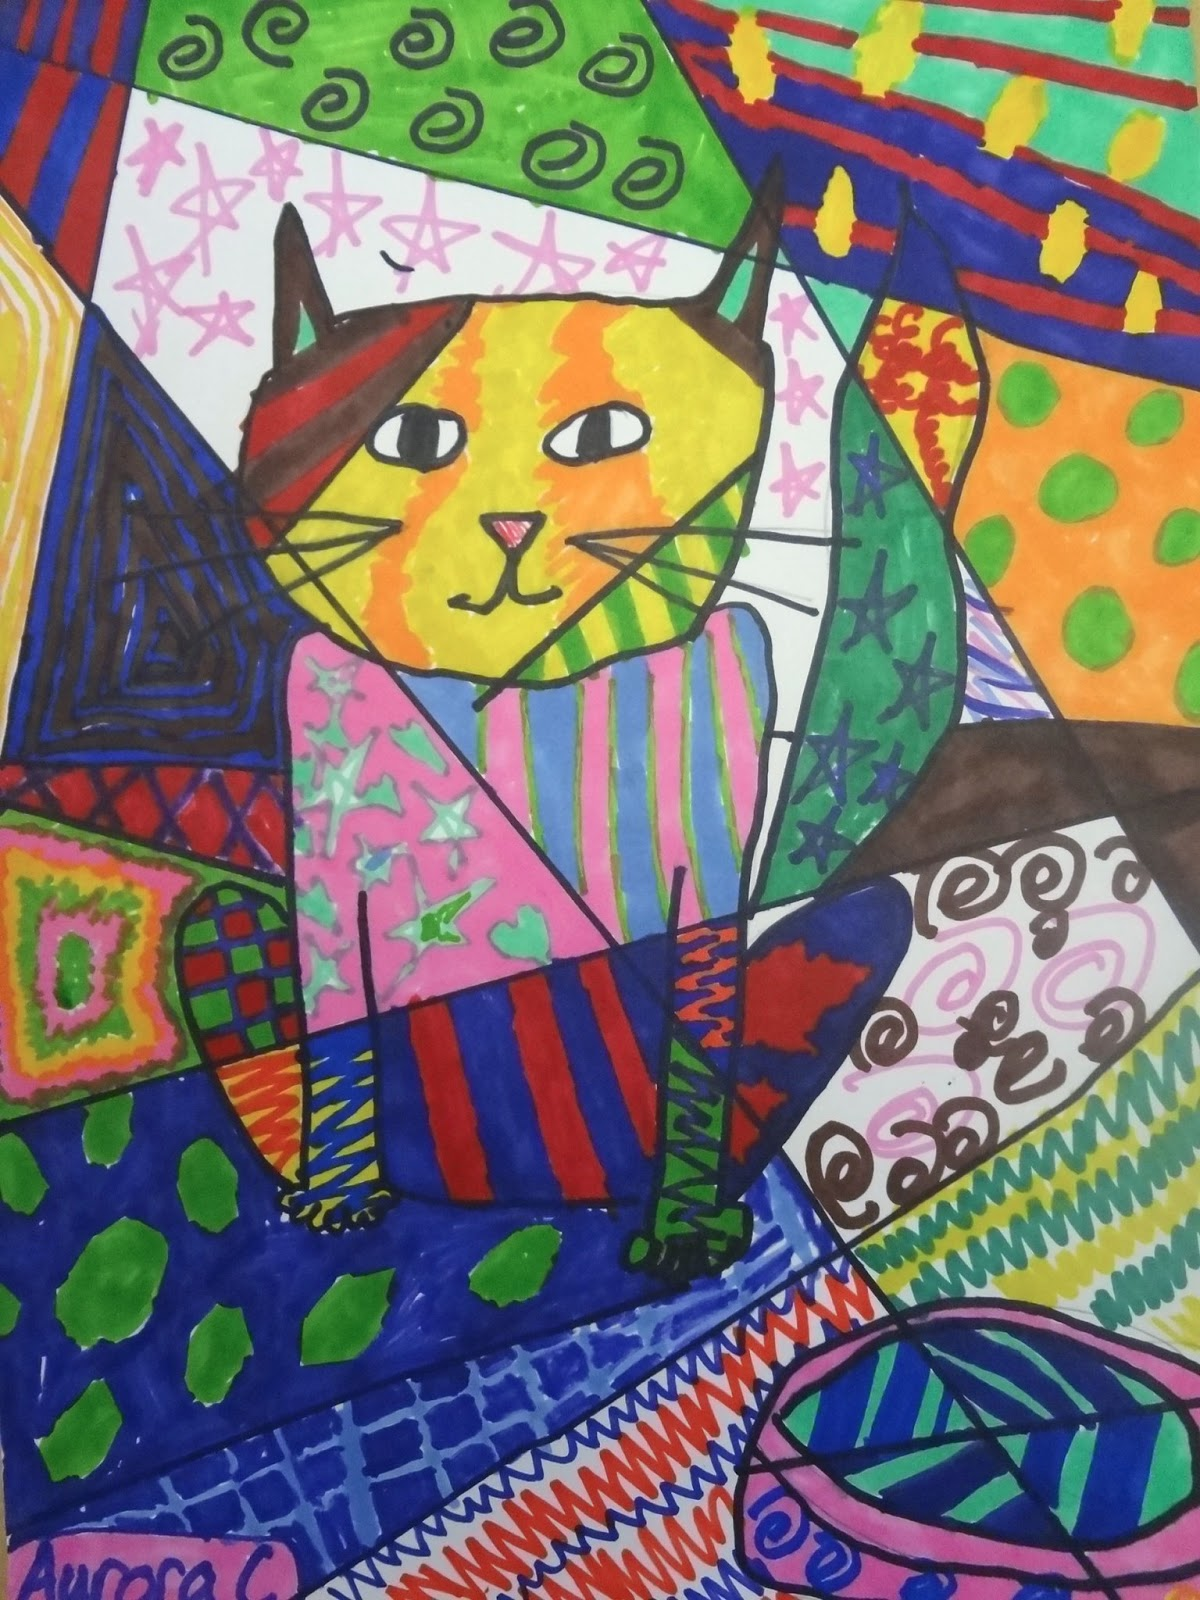 The Talking Walls Romero Britto Art Lesson For Kids